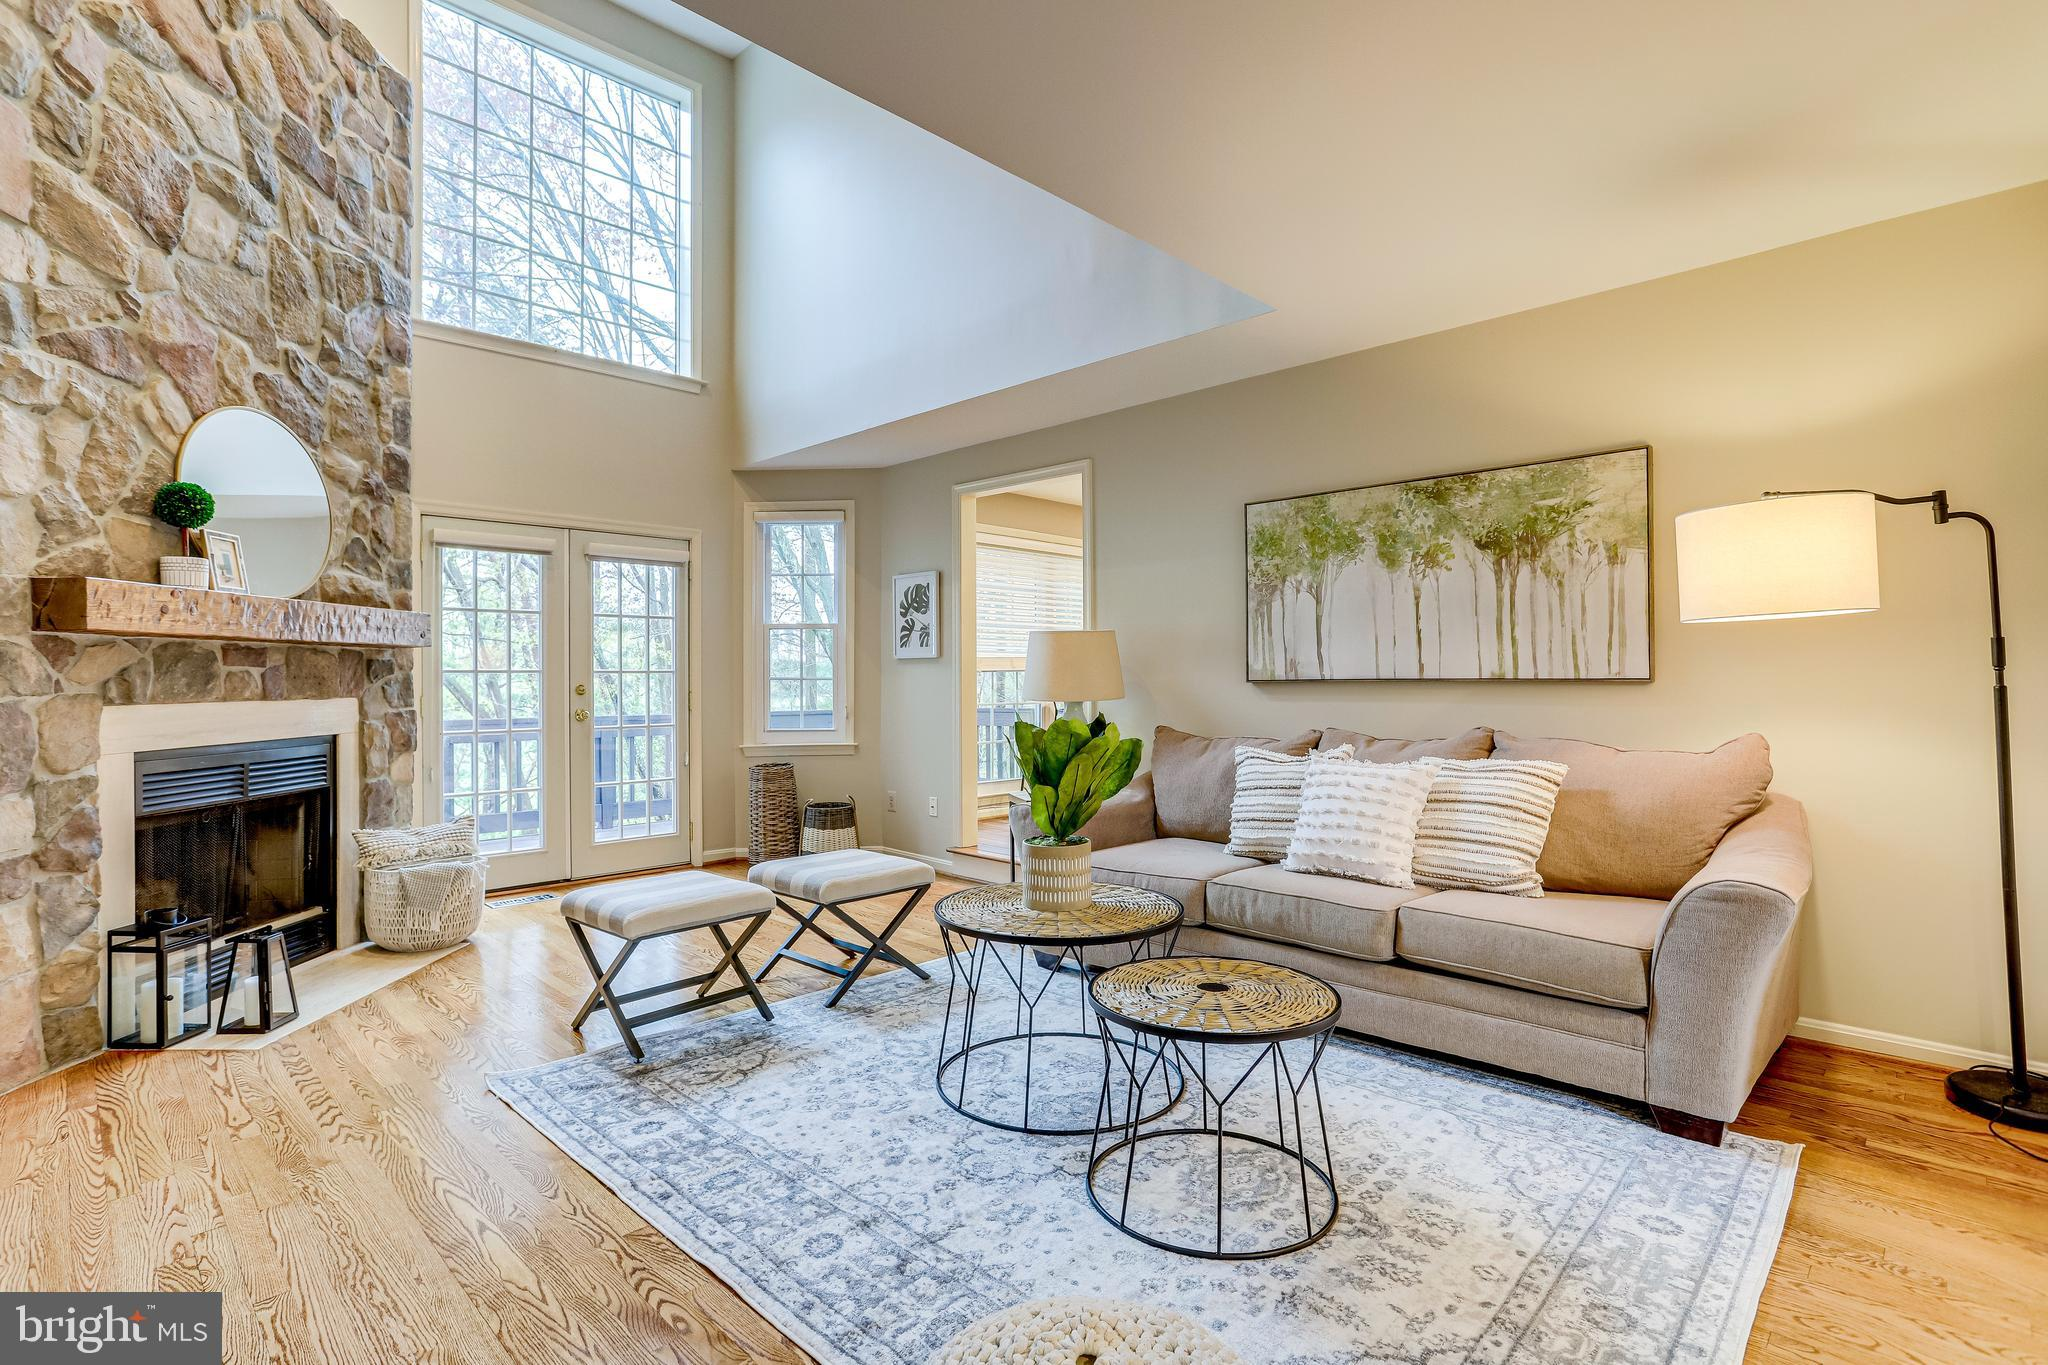 Great opportunity to live close to North Point and RTC & quick access to Reston Pkwy, Fairfax County